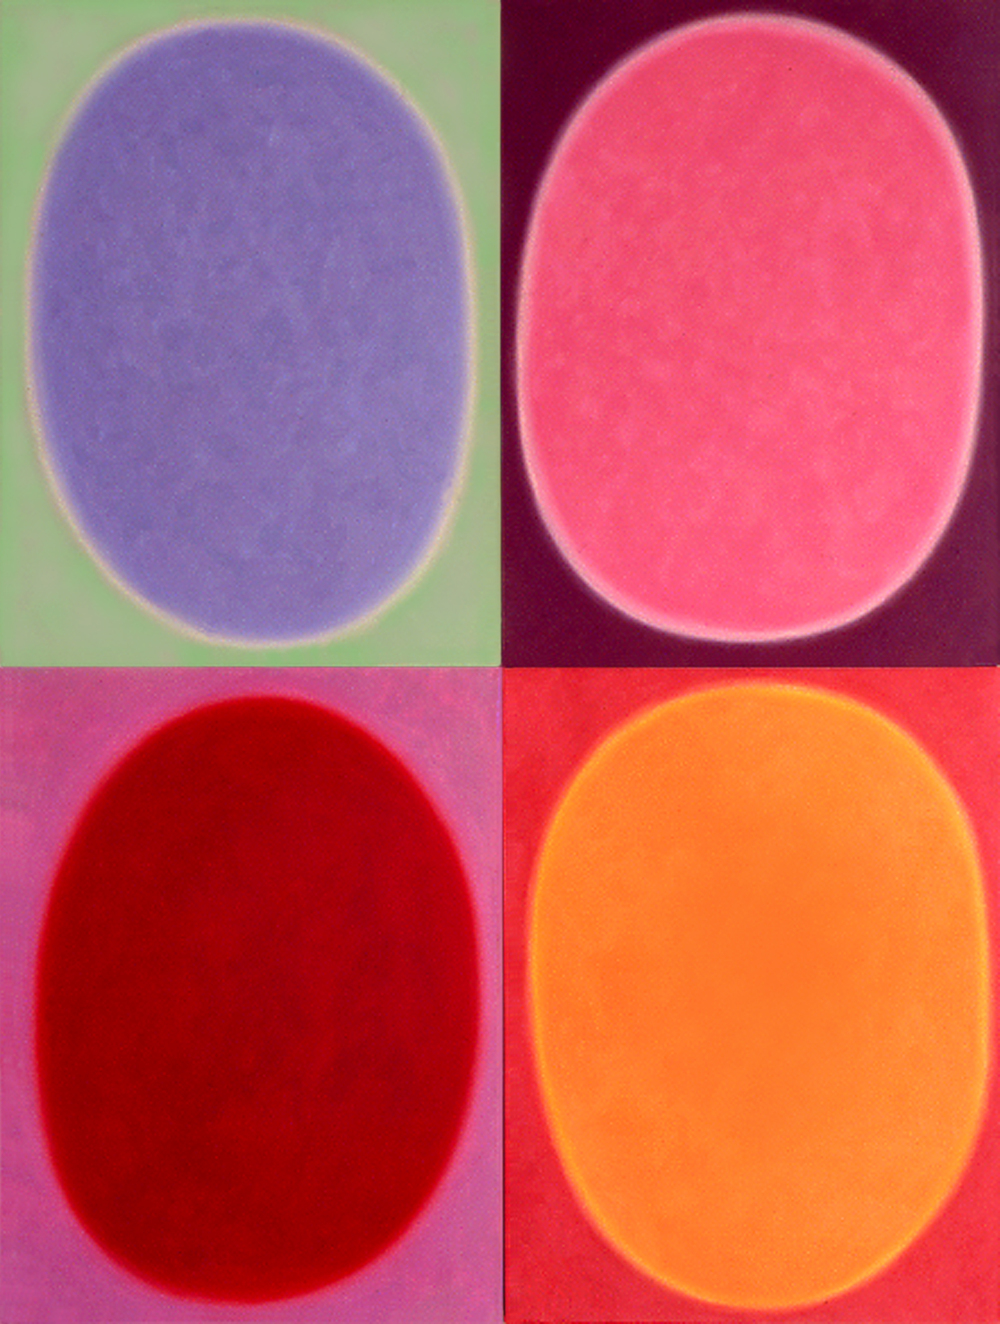 "Silent 14, oil on canvas, 2003, series of 4 panels W18"" x H24"" each, total format W36"" x H48"". Private collection."